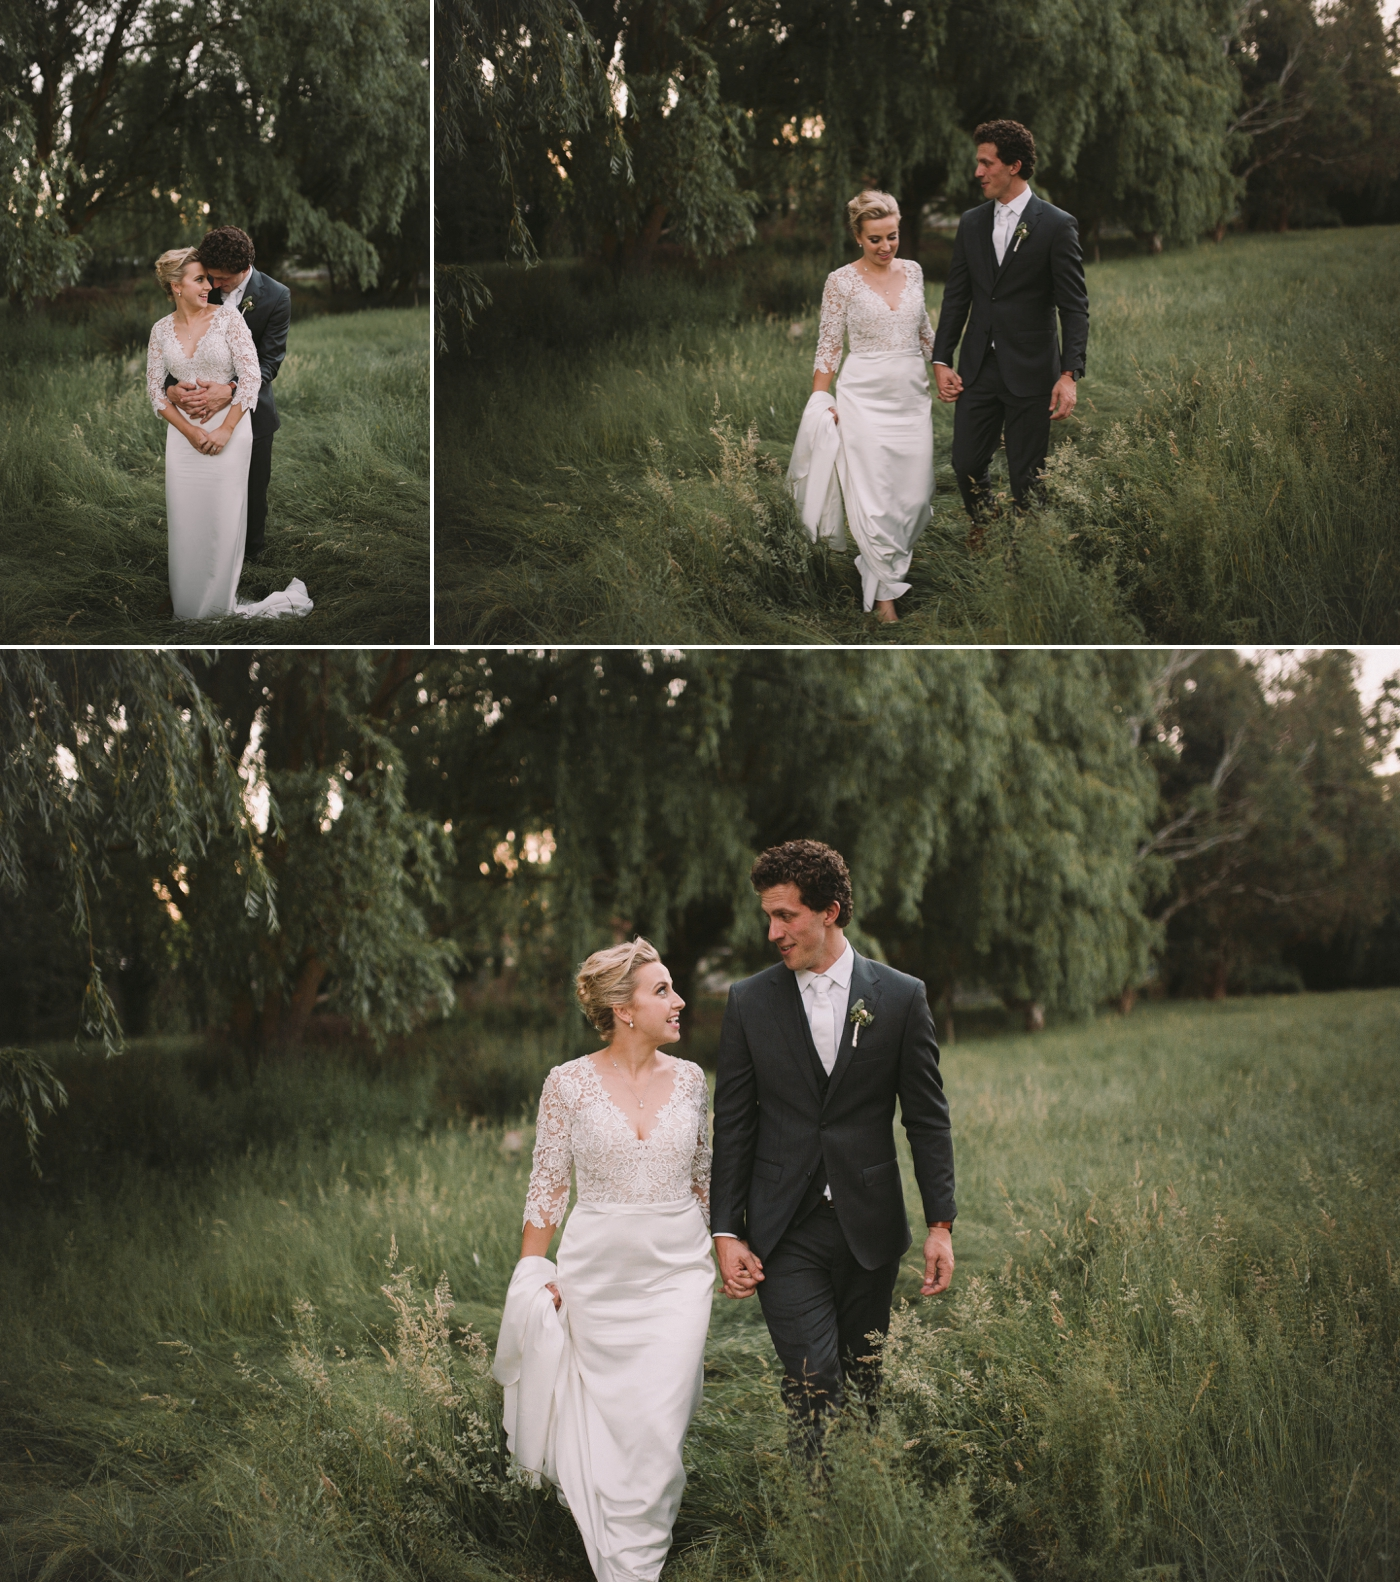 Penny and Michael - Adelaide Hills Wedding Photographer - Natural wedding photography in Adelaide - Katherine Schultz_0086.jpg